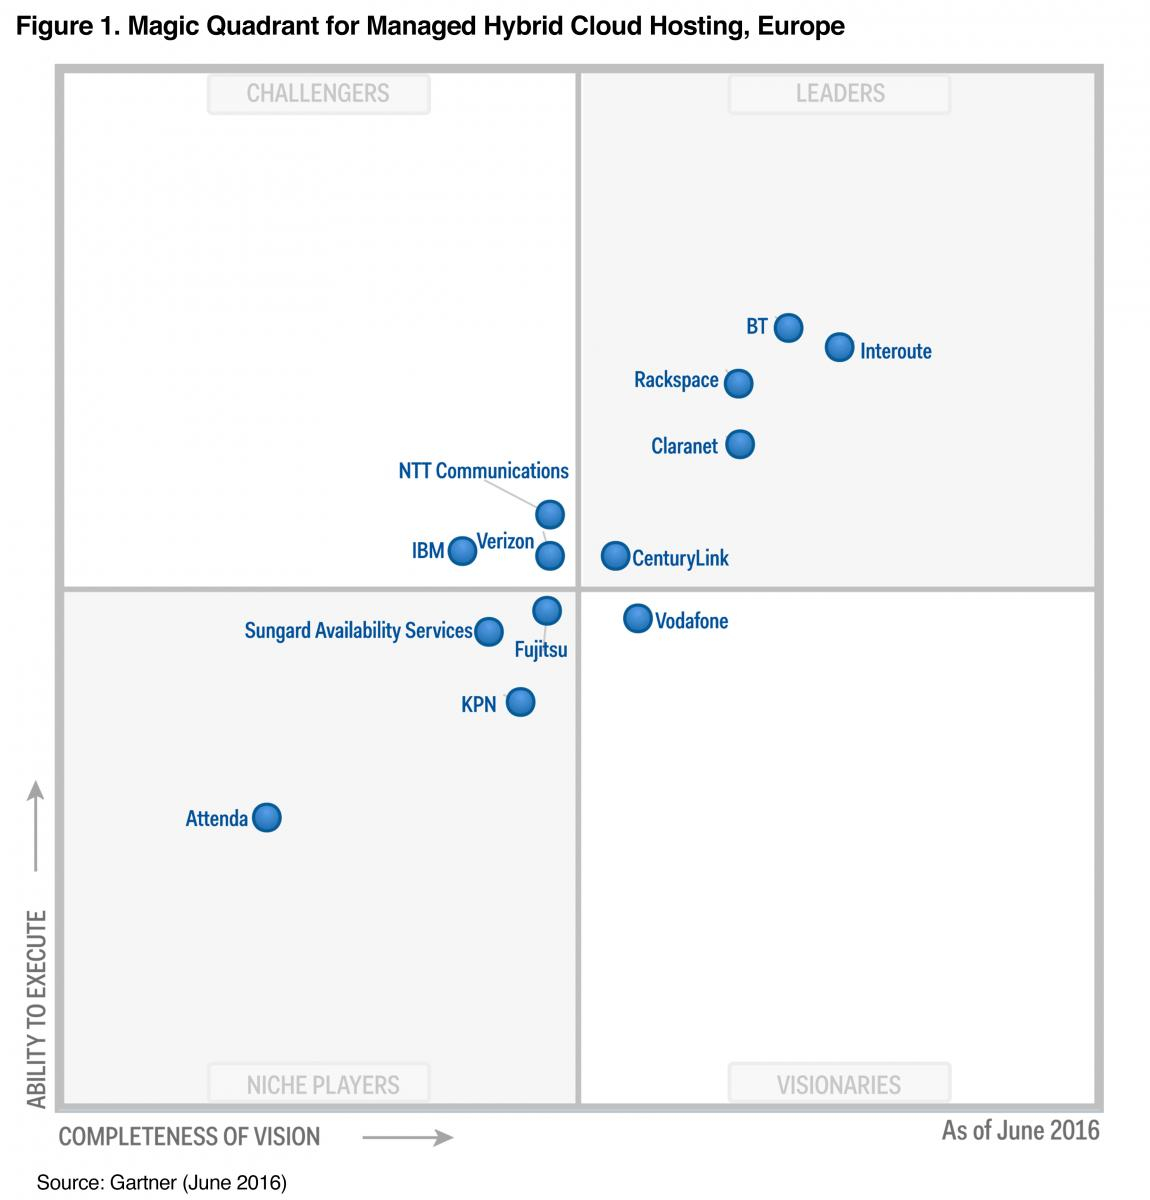 Leader Gartner Magic Quadrant Managed Hybrid Cloud Hosting